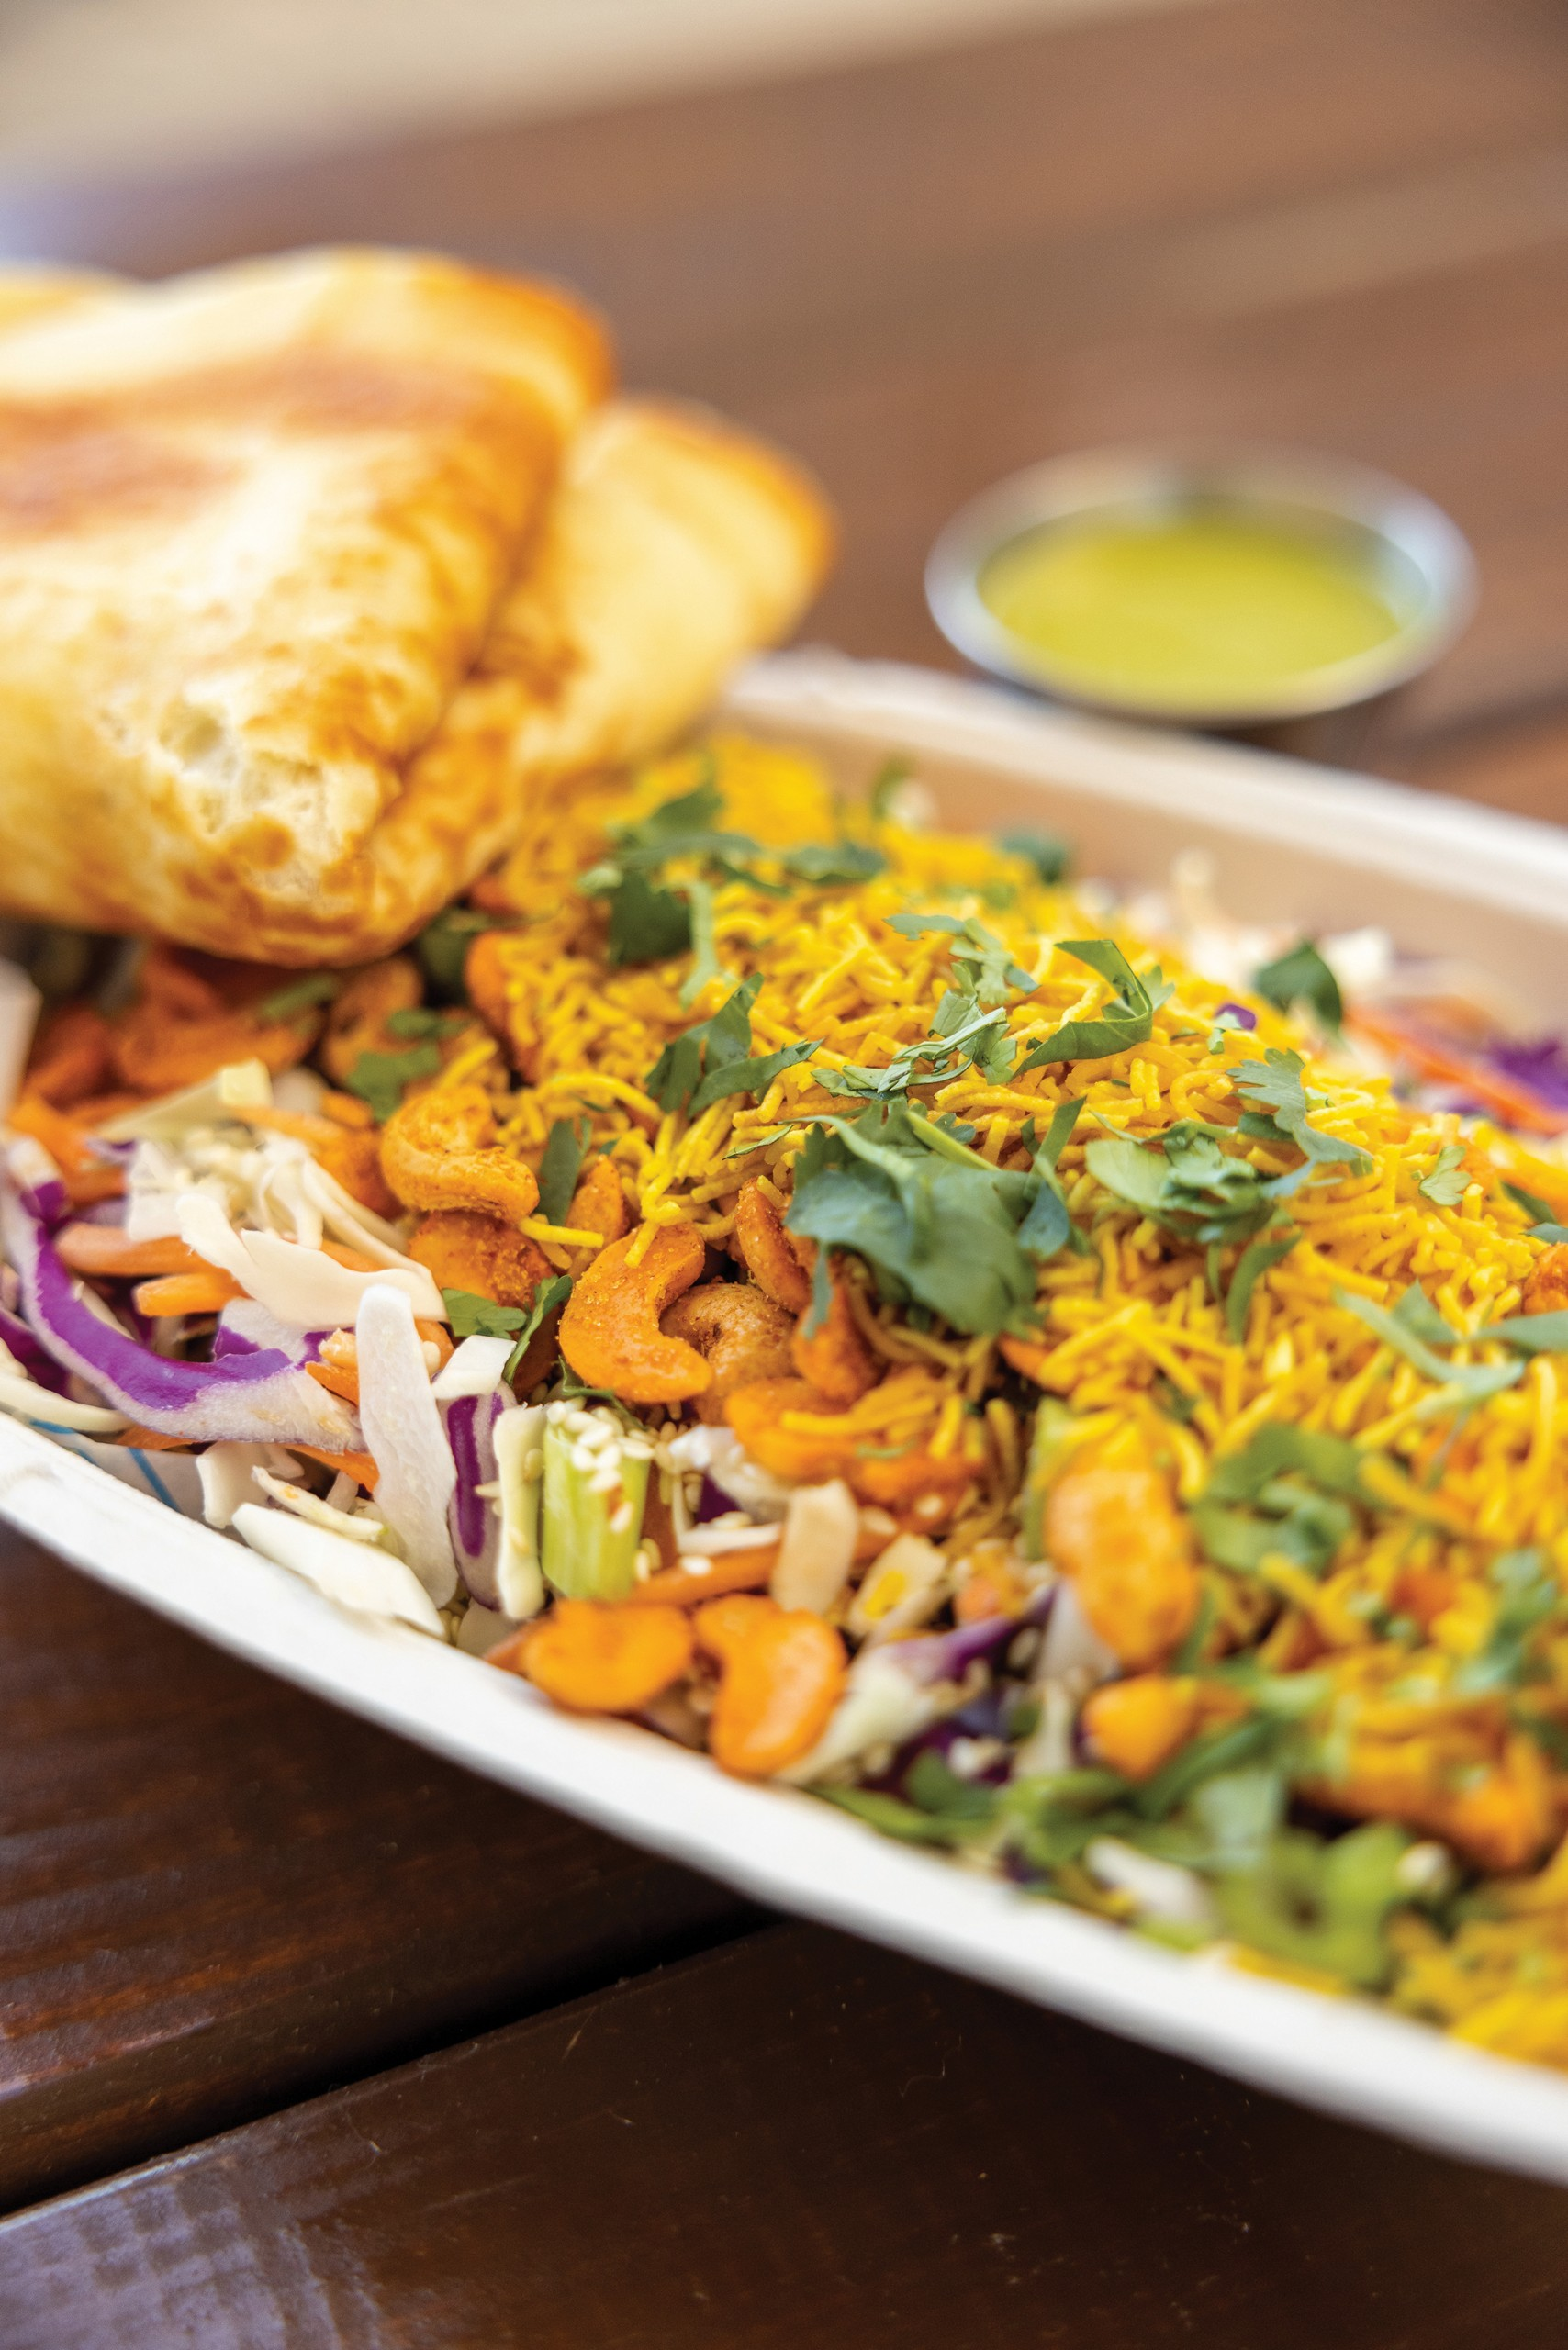 Charlotte, Nc March 8th 2021 Botiwalla Kale Pakoras: Kale Fritters Hot, Buttered Naan Spdp Crispy Flour Puffs Stuffed With Potatoes, Cilantro, And Onions Drizzled With Sweet And Savory Chutneys. Botiwalla Lamb Burgers Desi Salad Drinks Pineapple